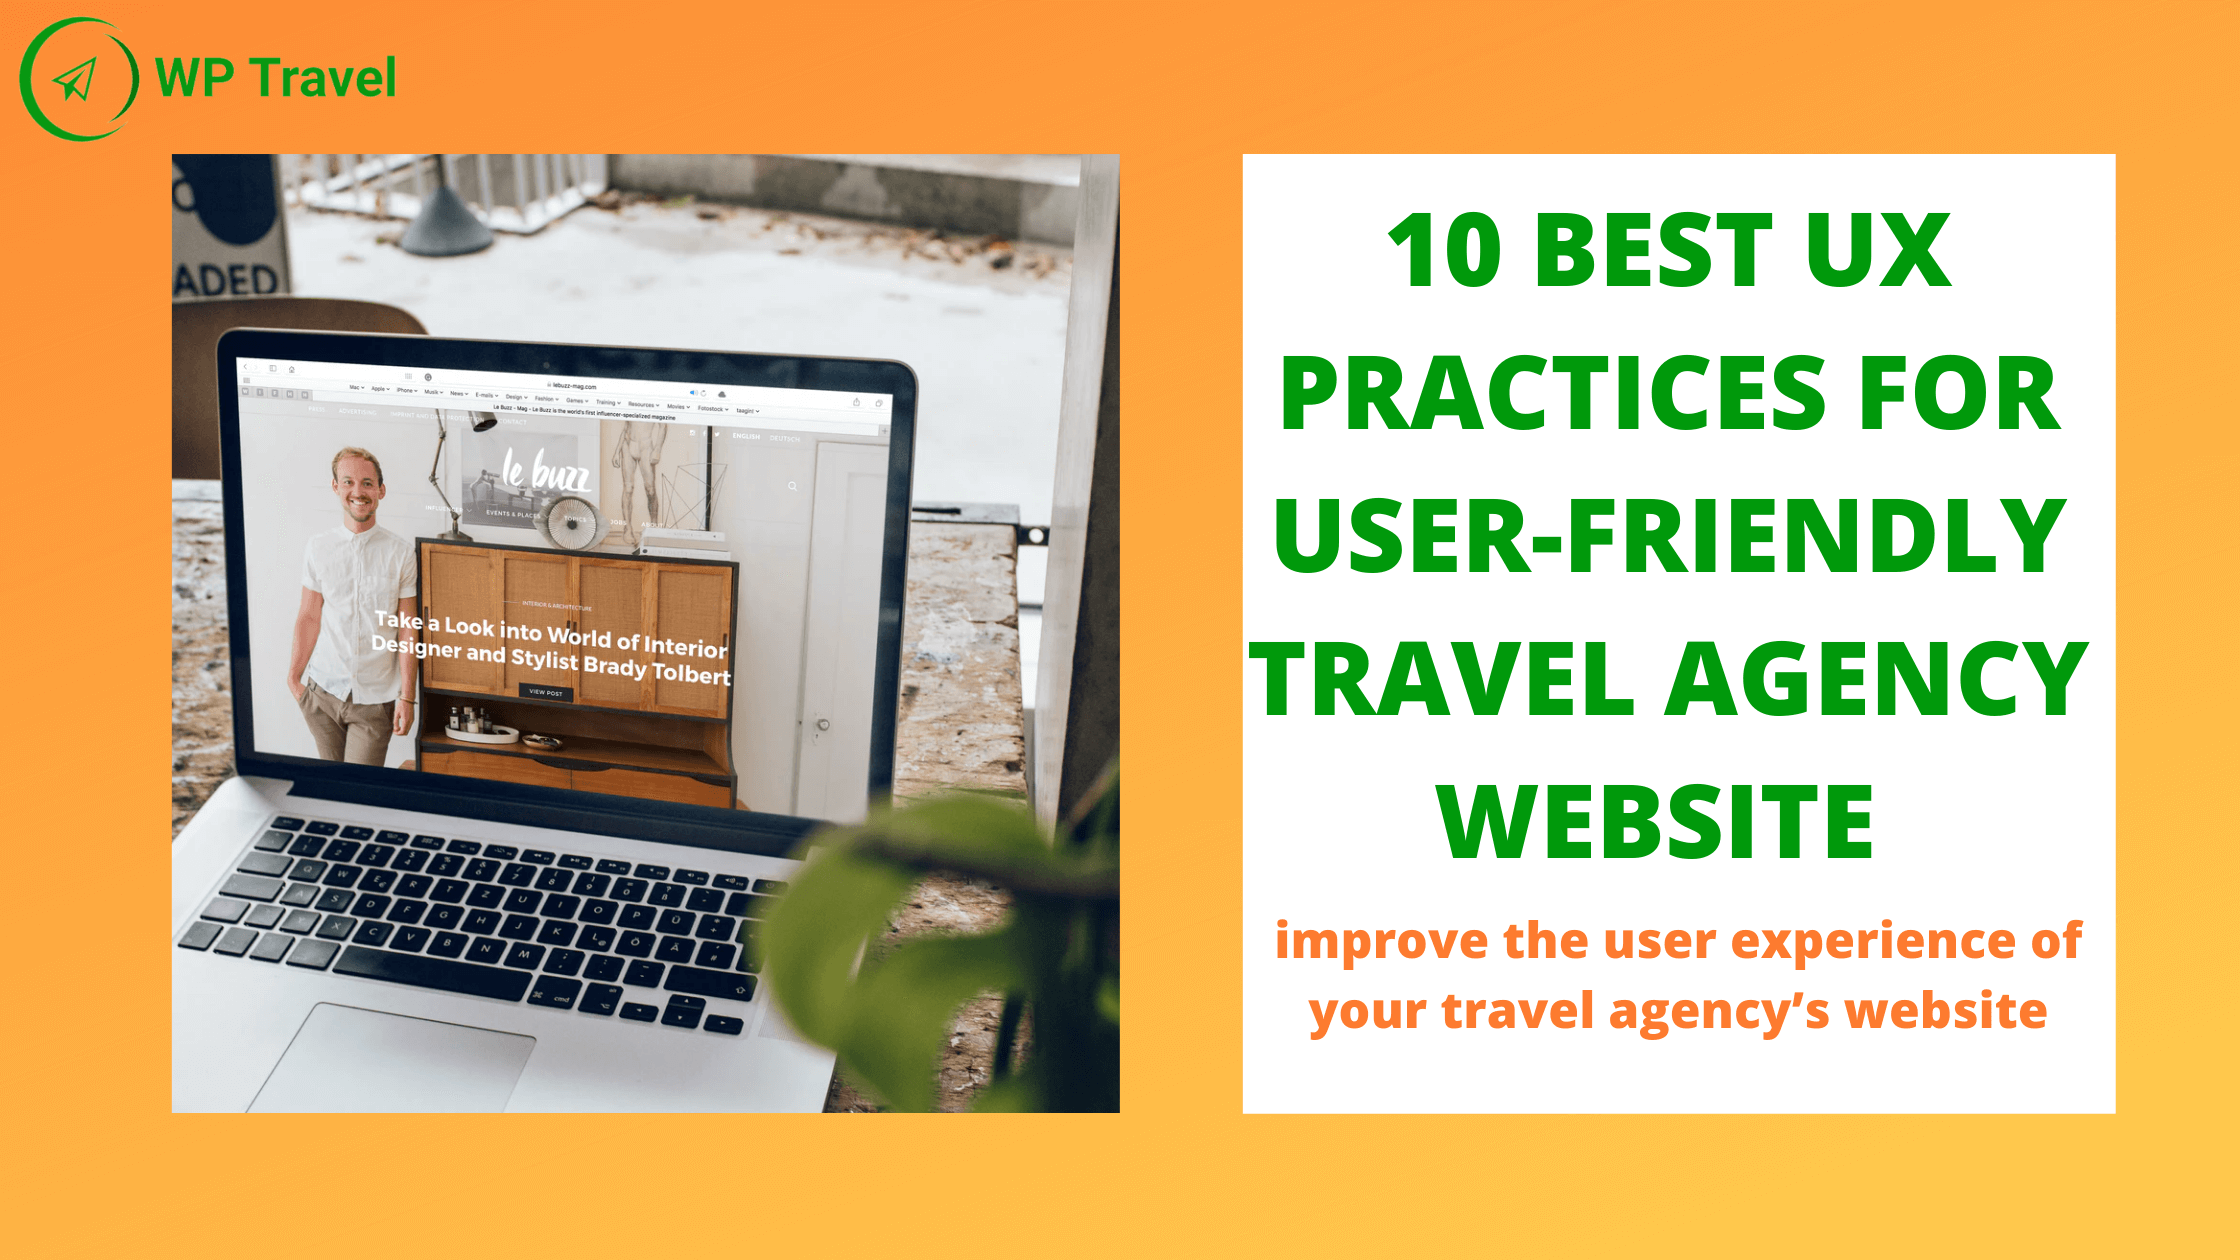 10 Best UX Practices for User Friendly Travel Agency Website